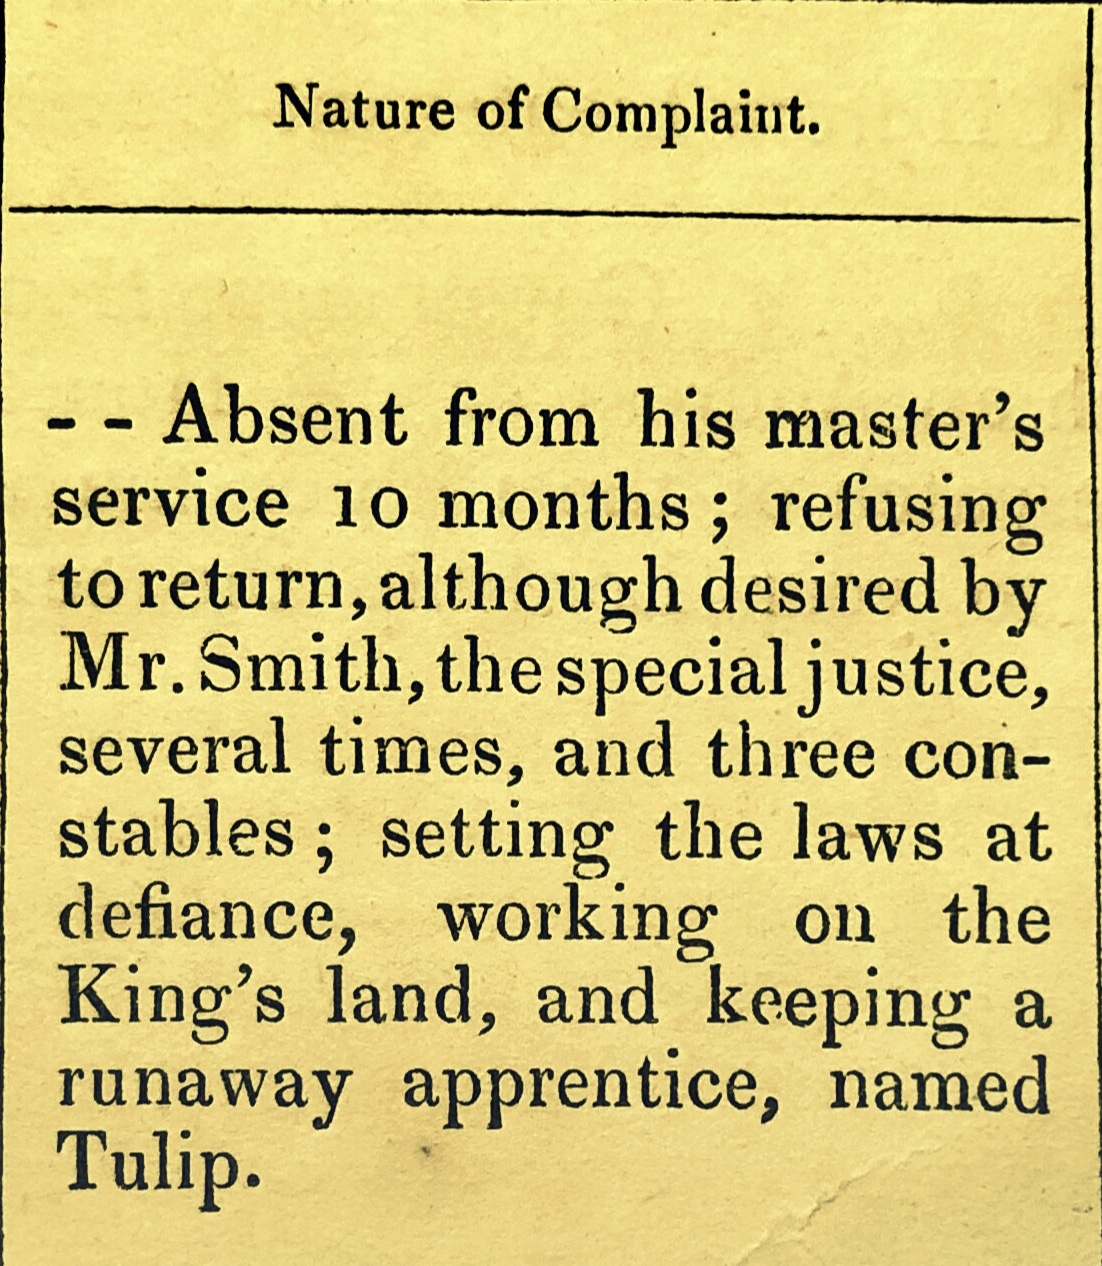 Former Slave Sam Charged With Hiding Runaway Apprentice Tulip, Disobeying His Master and Working the King's Land Without Permission, The Bluff, Eleuthera, 1835